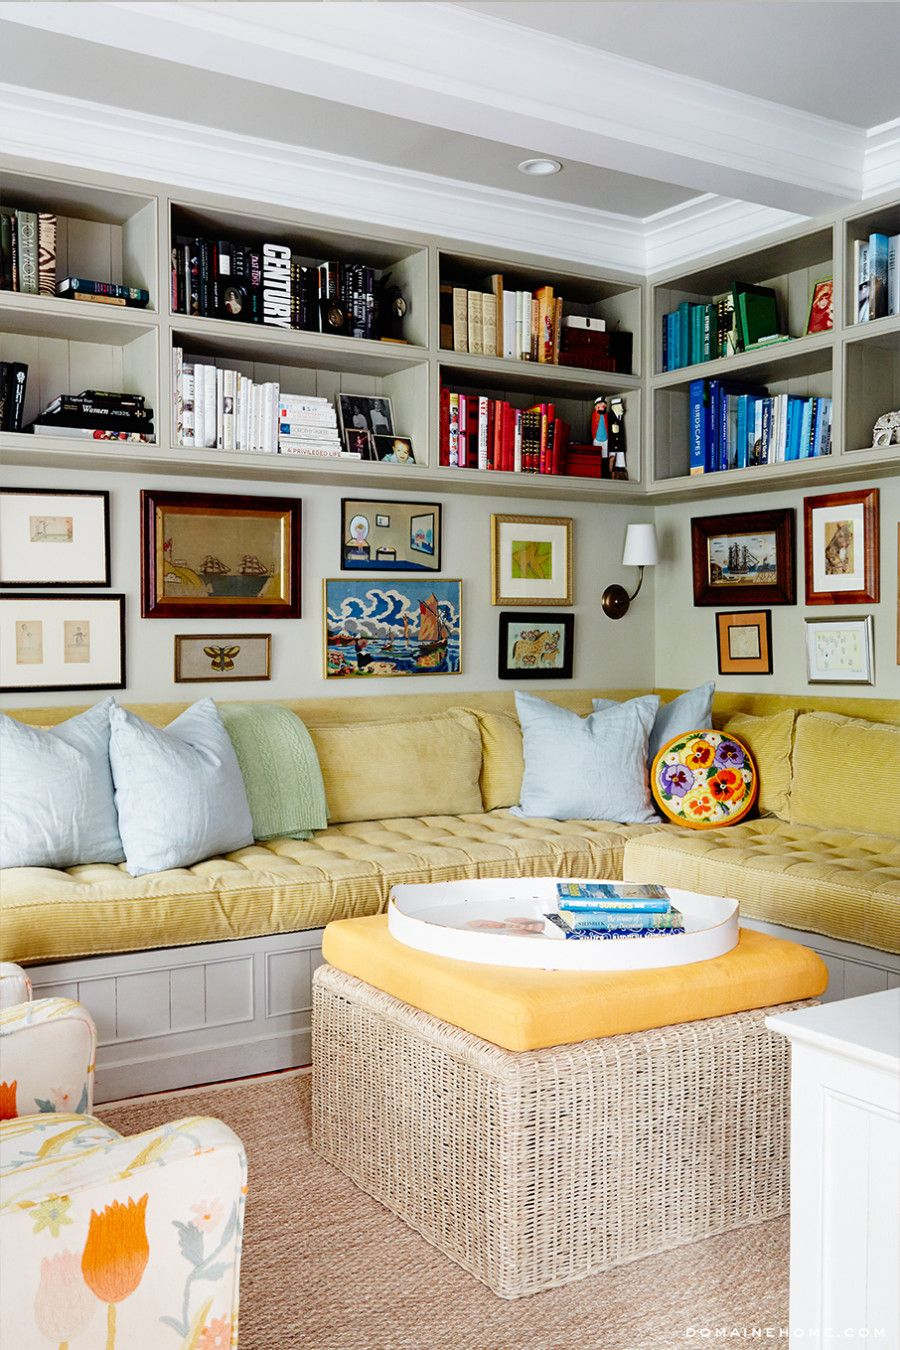 Small Space Living Diy Home Decor Small Space Decorating Organizing Small Spaces Popular Pin Living In S Small Space Hacks Small Spaces Small Space Living